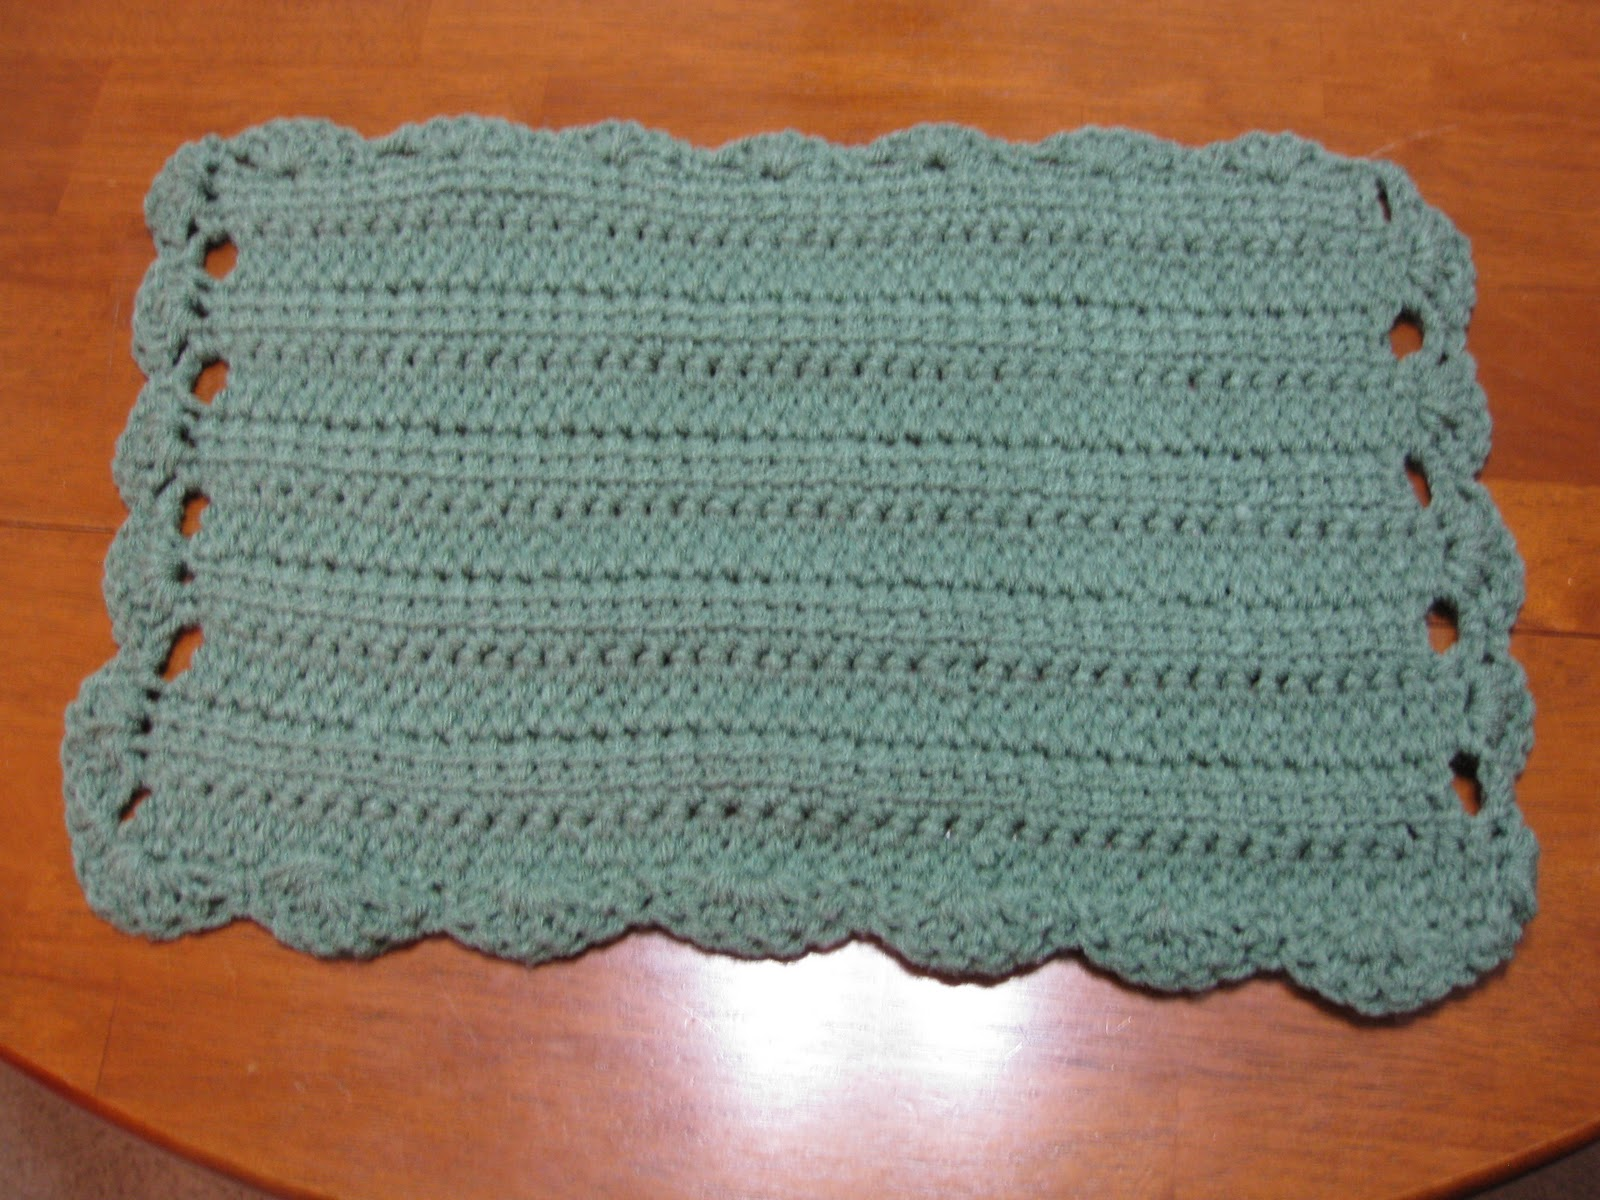 Crocheting Placemats : Engineered Crochet: Scallop Edged Placemats